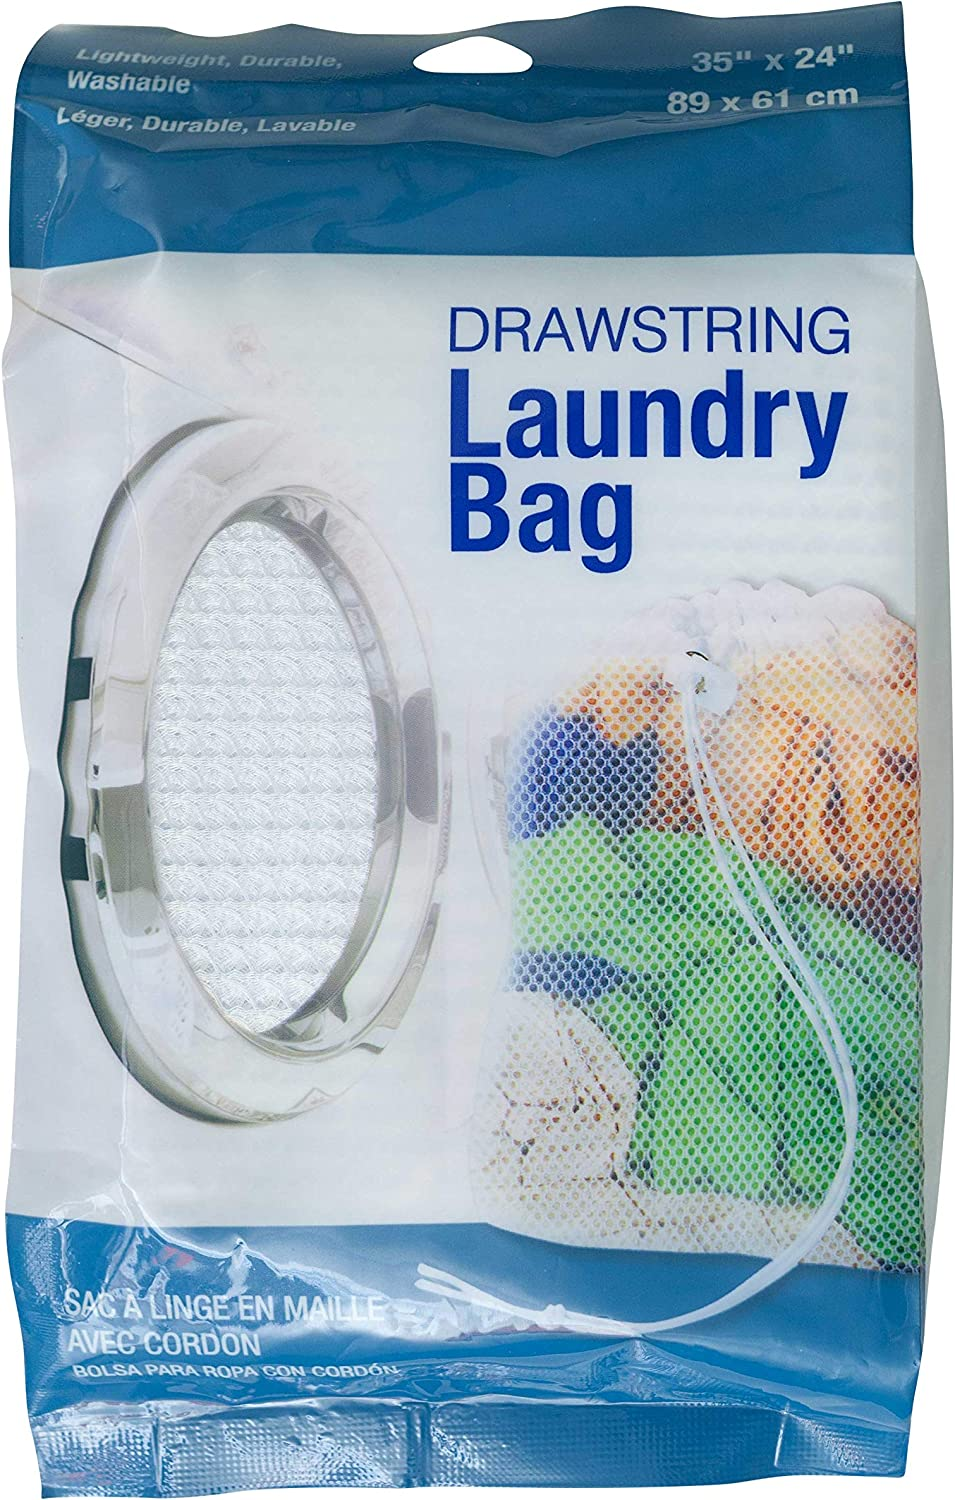 Jacent Drawstring Laundry Bag - 35 x 24 Inch - 1 Pack